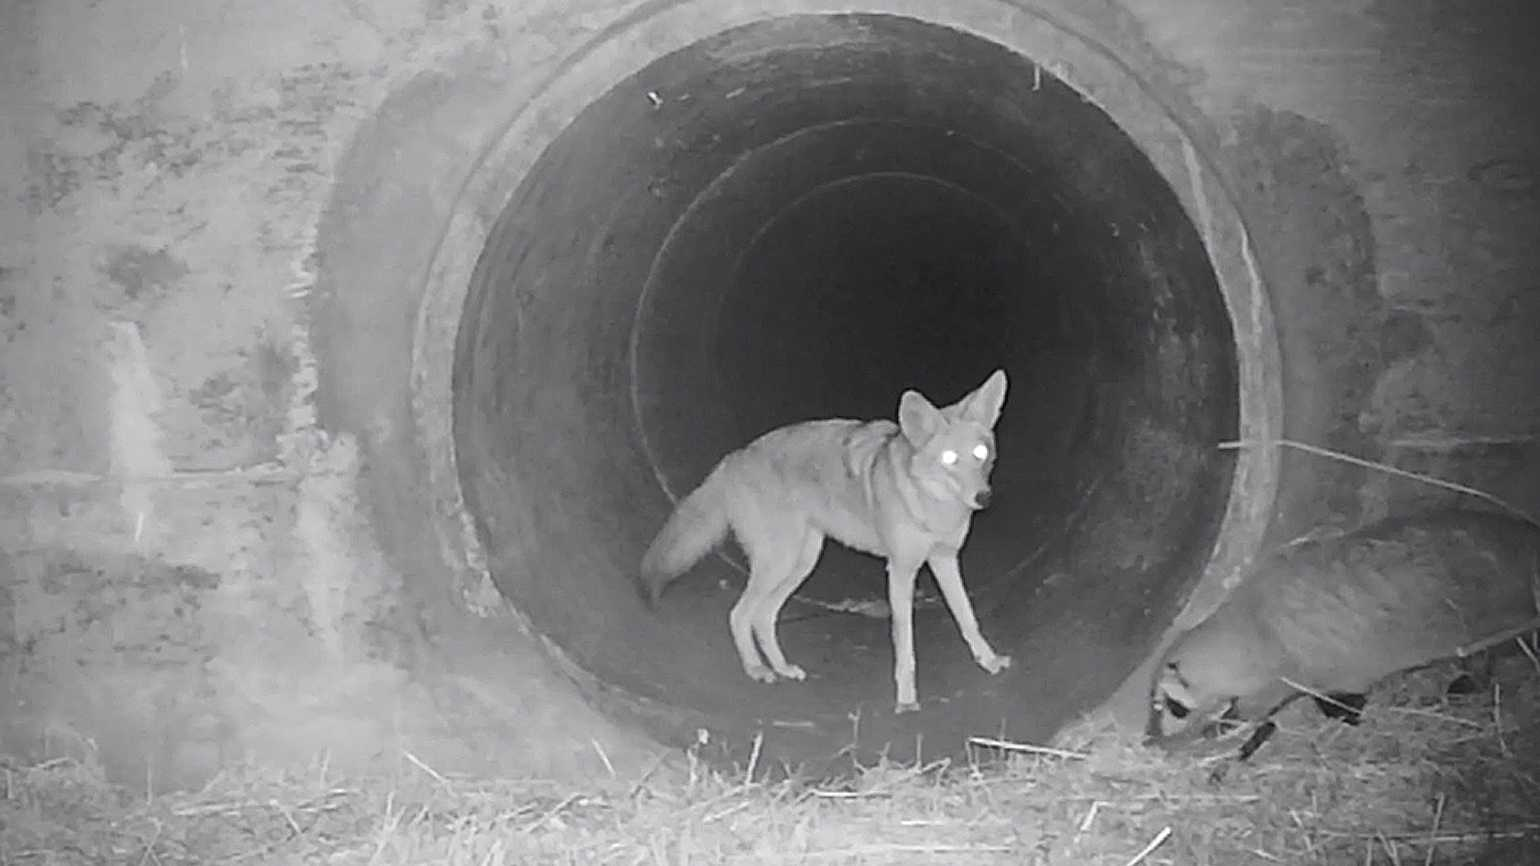 Coyote and badger walking through a human-made structure together